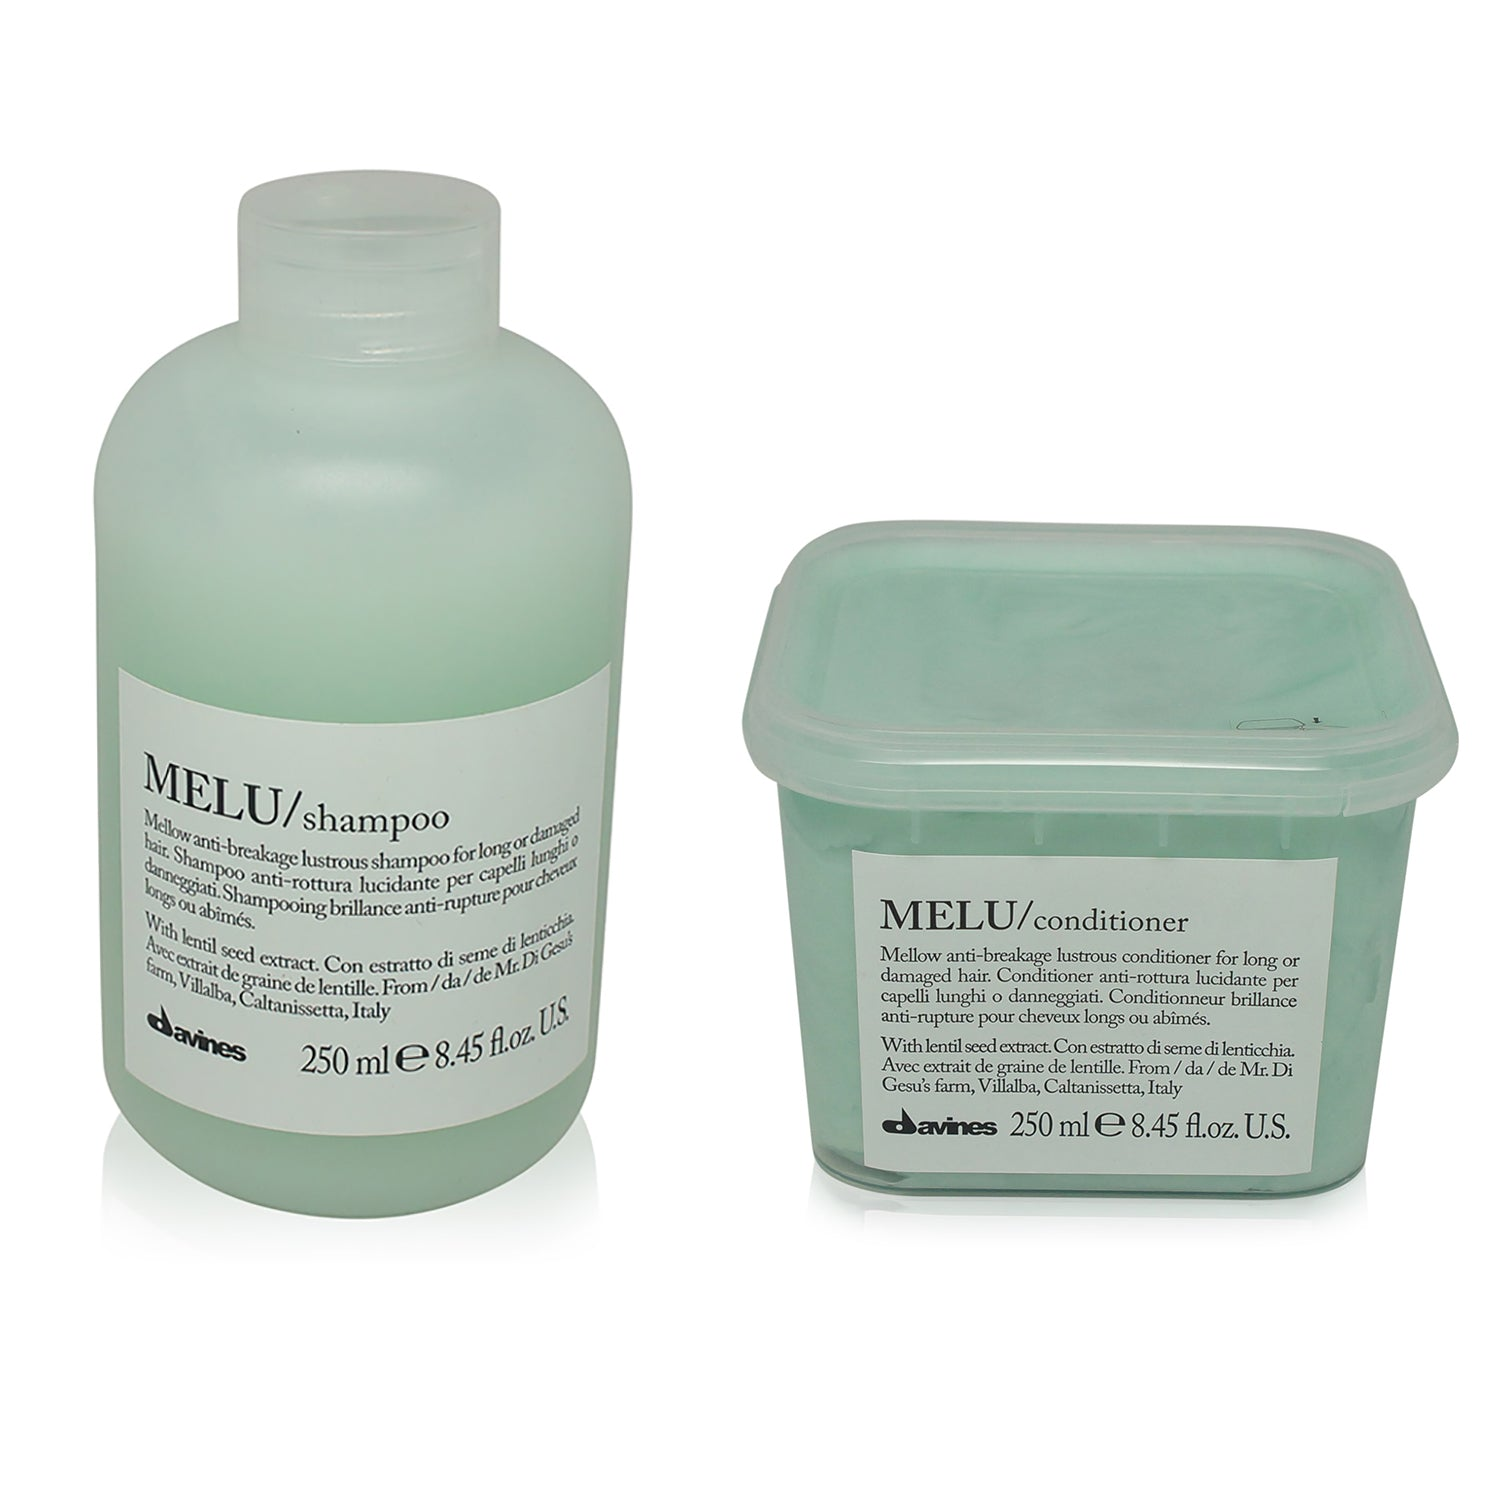 Melu Shampoo and Conditioner Duo